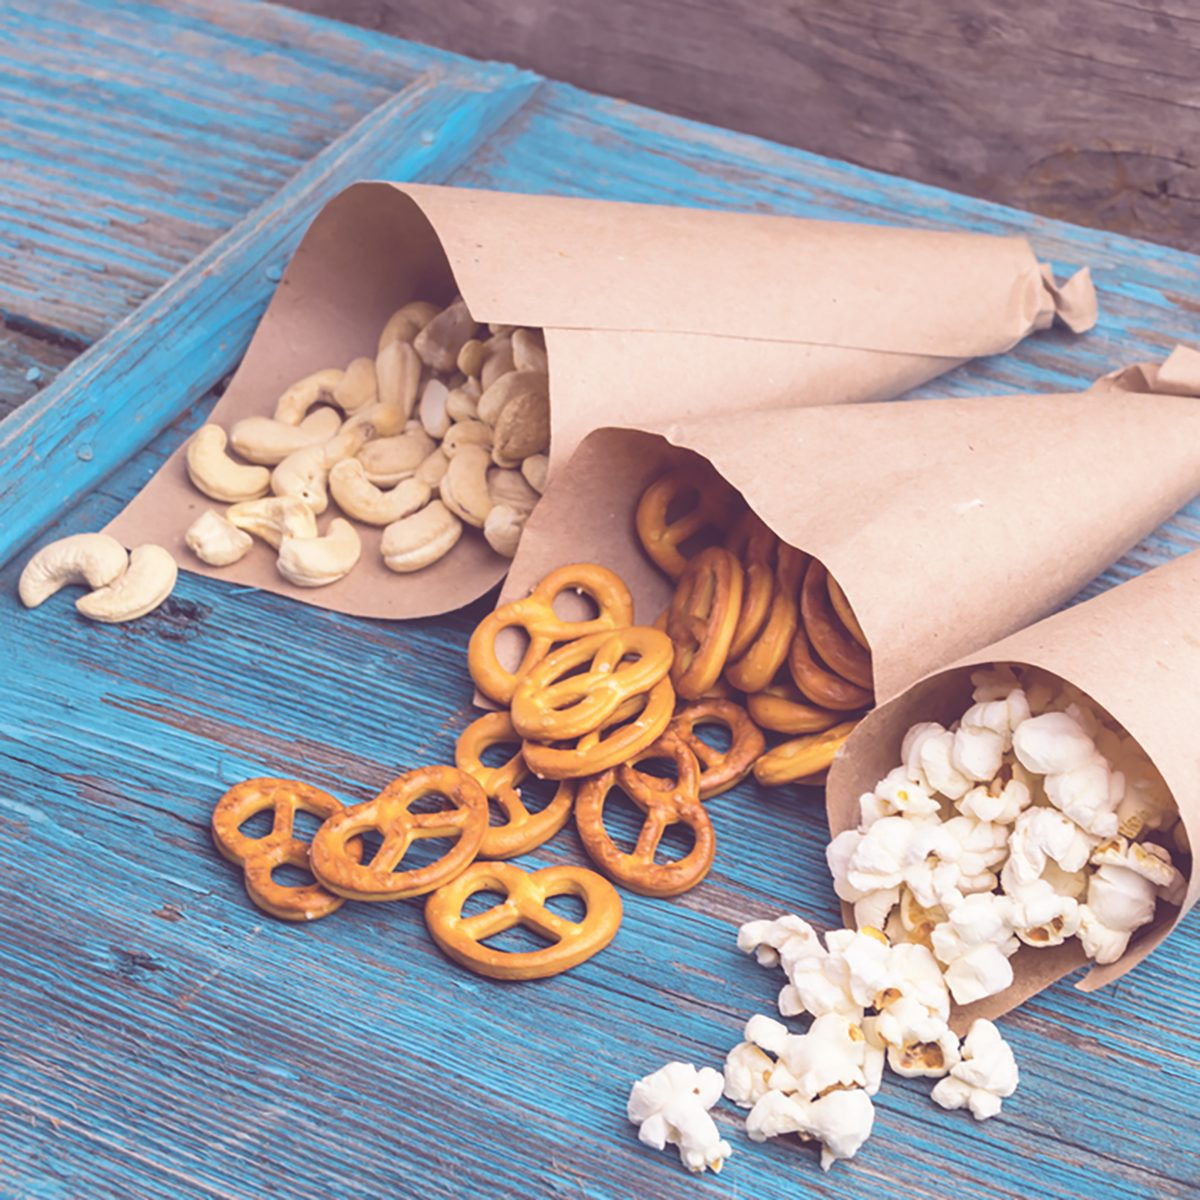 A variety of nutritious snacks ,nuts, crackers, popcorn , paper bags, lying on a wooden table;